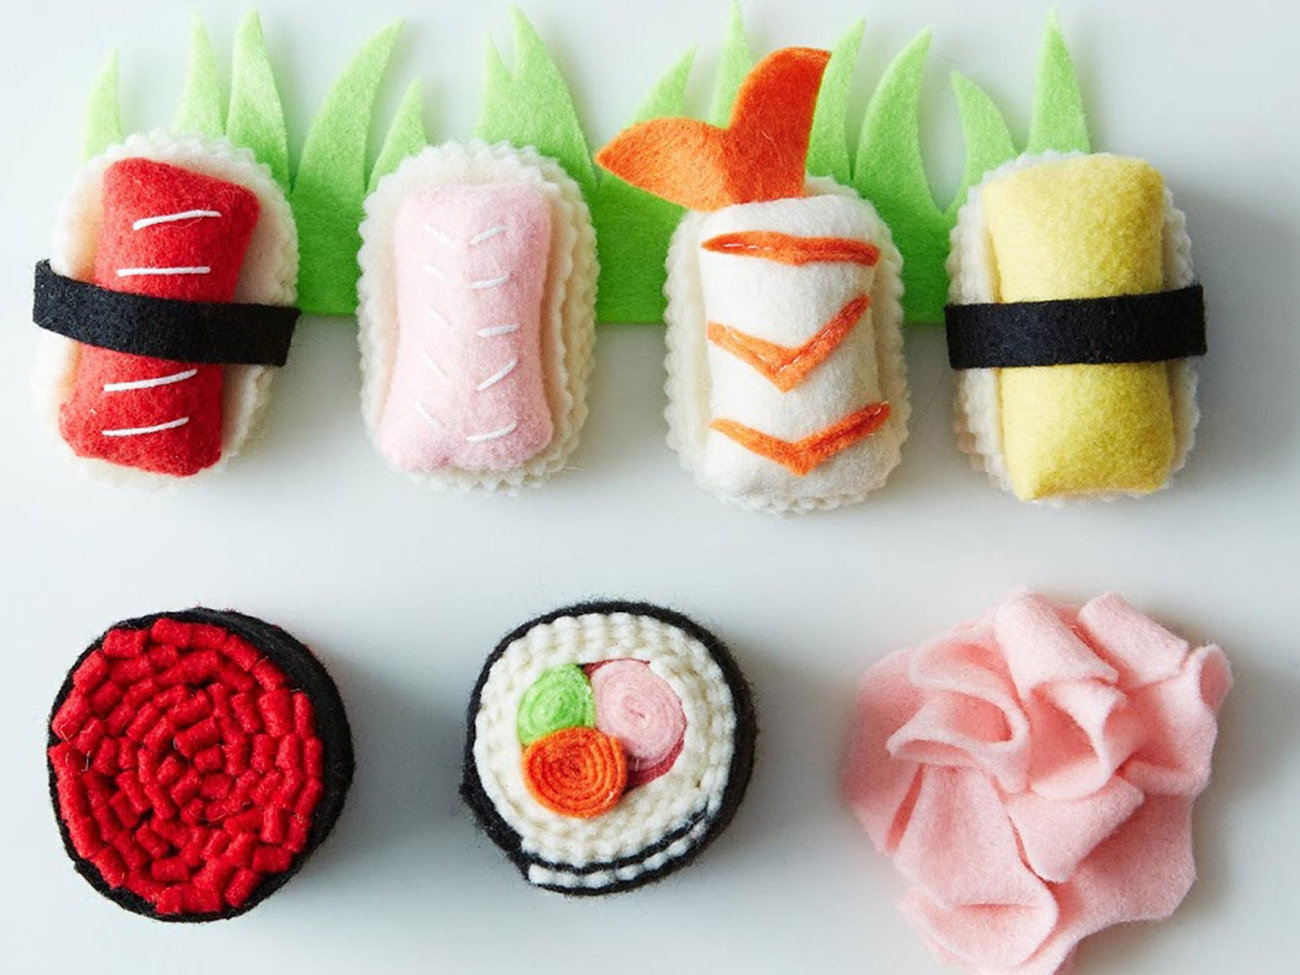 felt-food-kids-gg1115.jpg